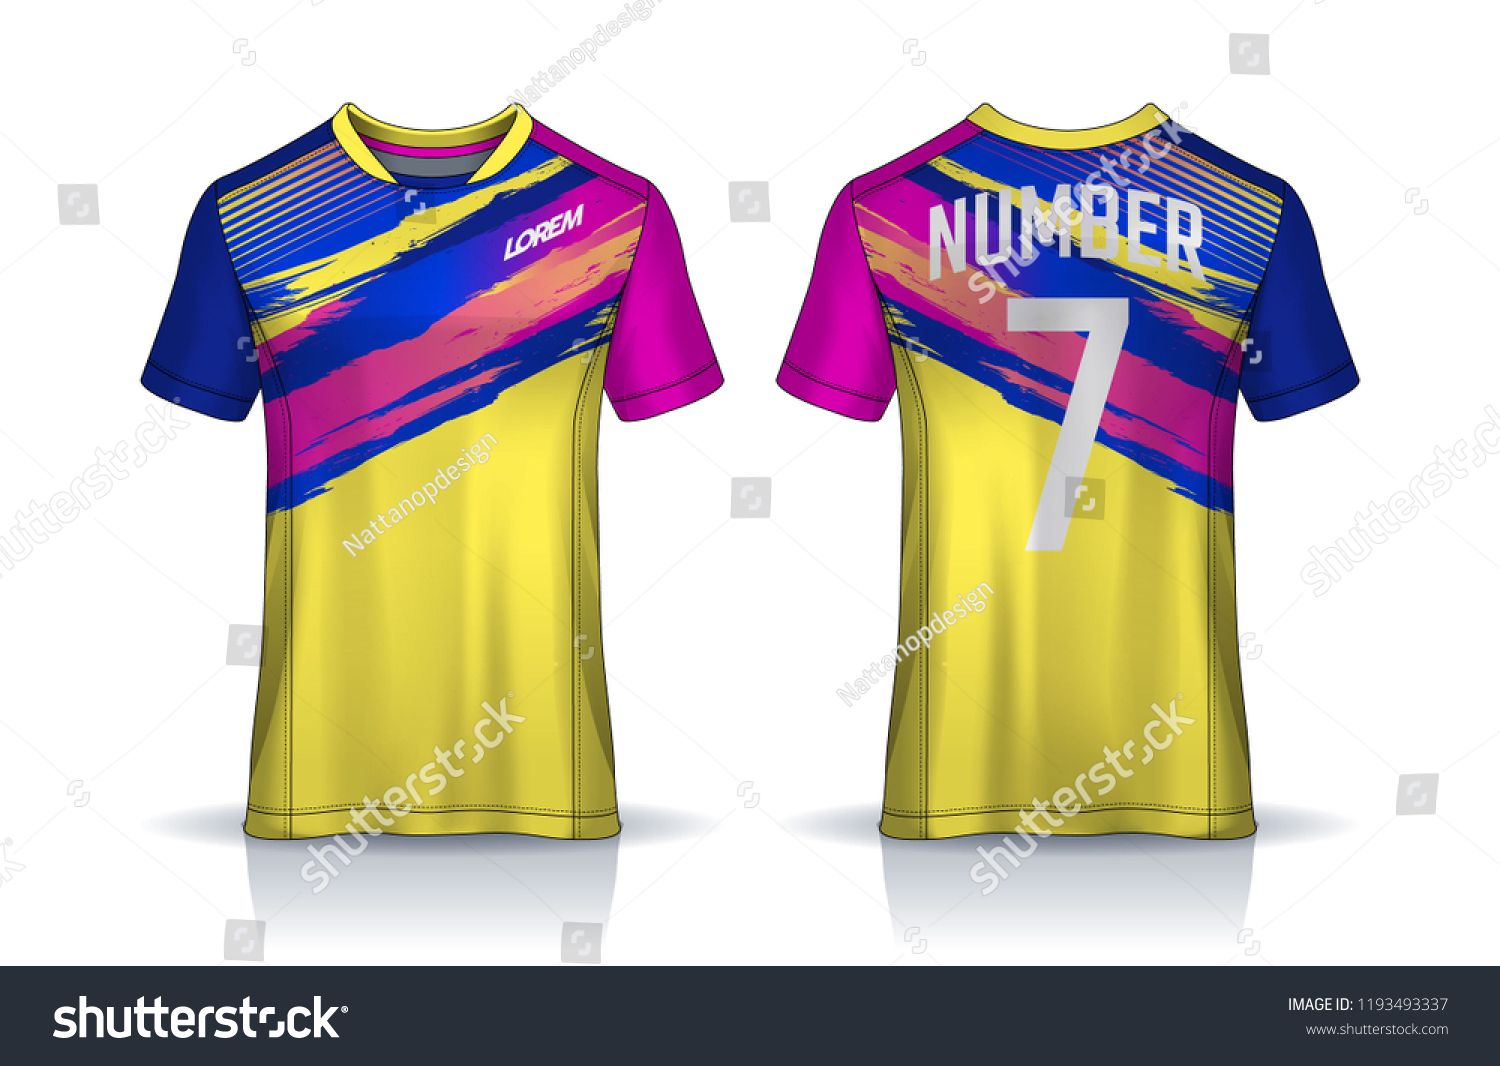 T Shirt Sport Design Template Soccer Jersey Mockup For Football Club Uniform Front And Back View Template Soccer Je Sports Design Jersey Shirt Soccer Jersey